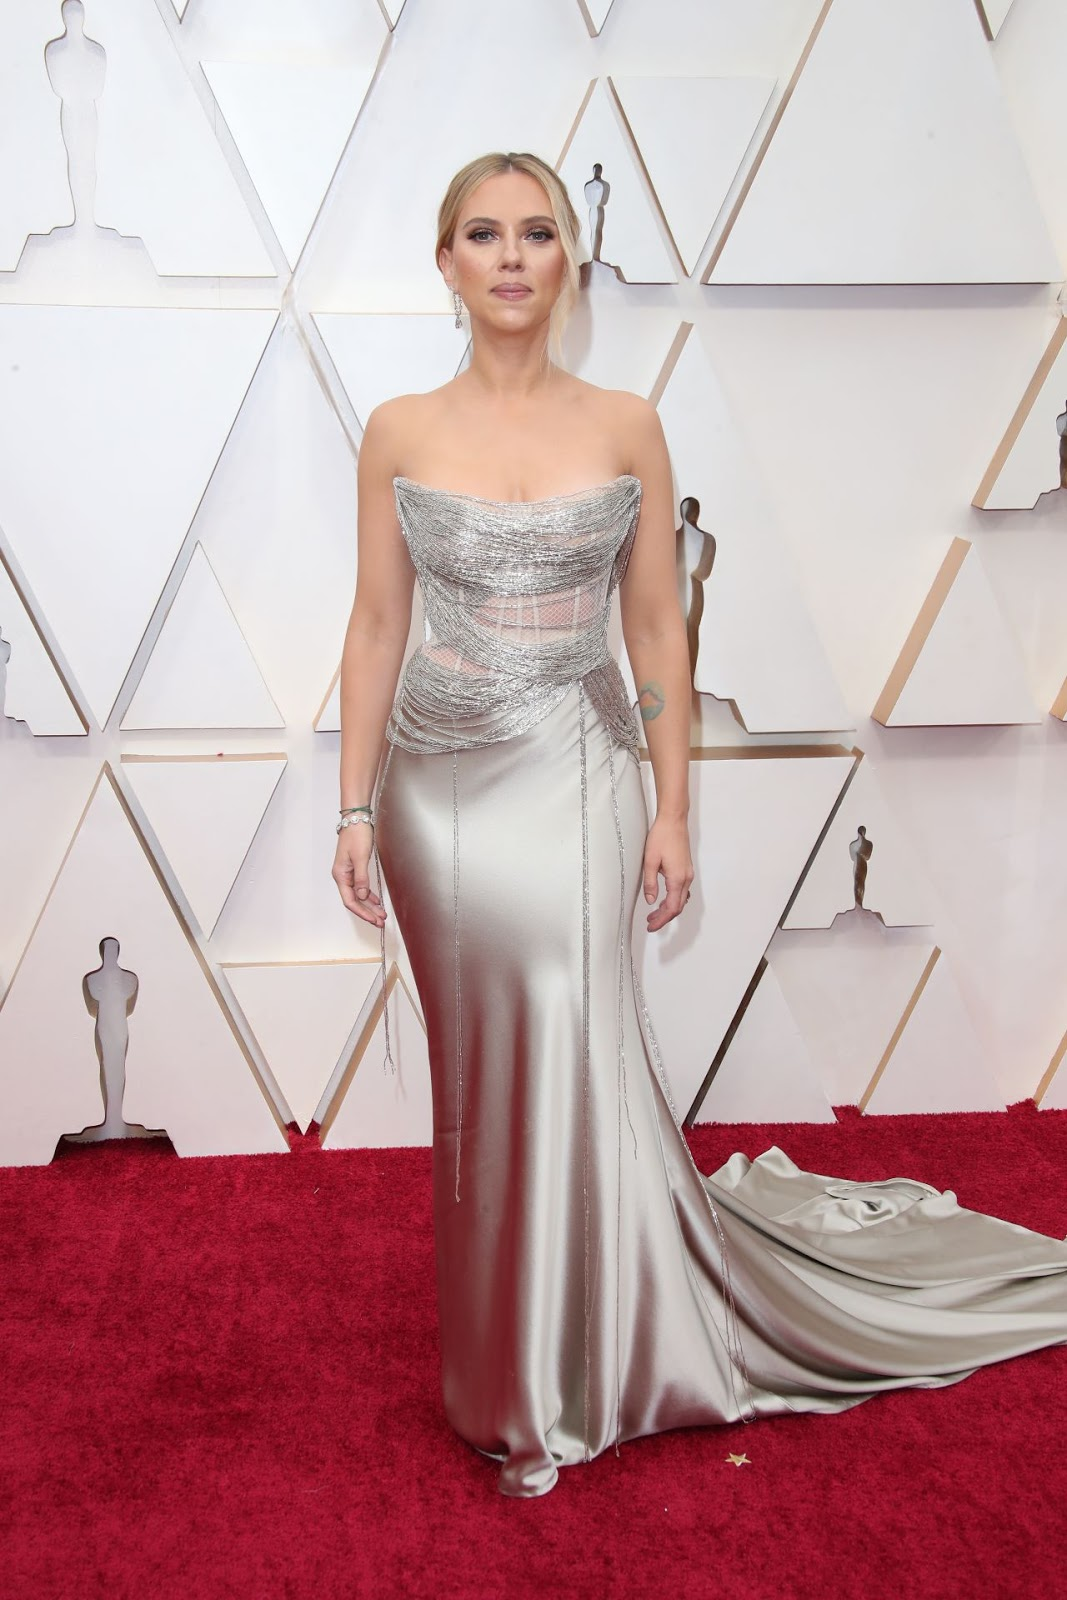 Scarlett Johansson sparkles in Oscar de la Renta at the 2020 Oscars